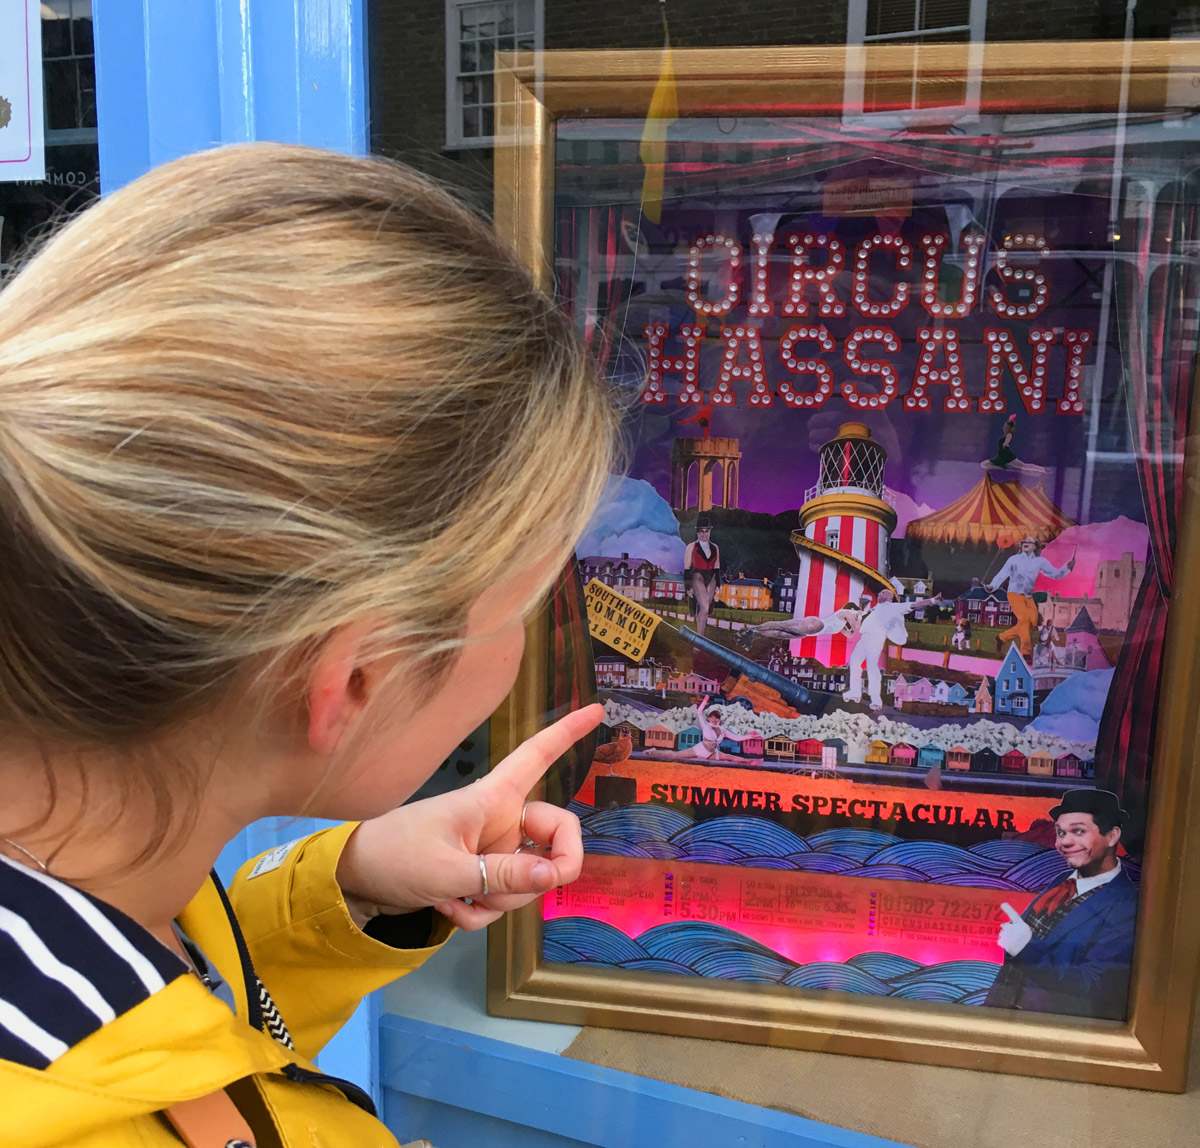 circus hassani living poster in a shop window